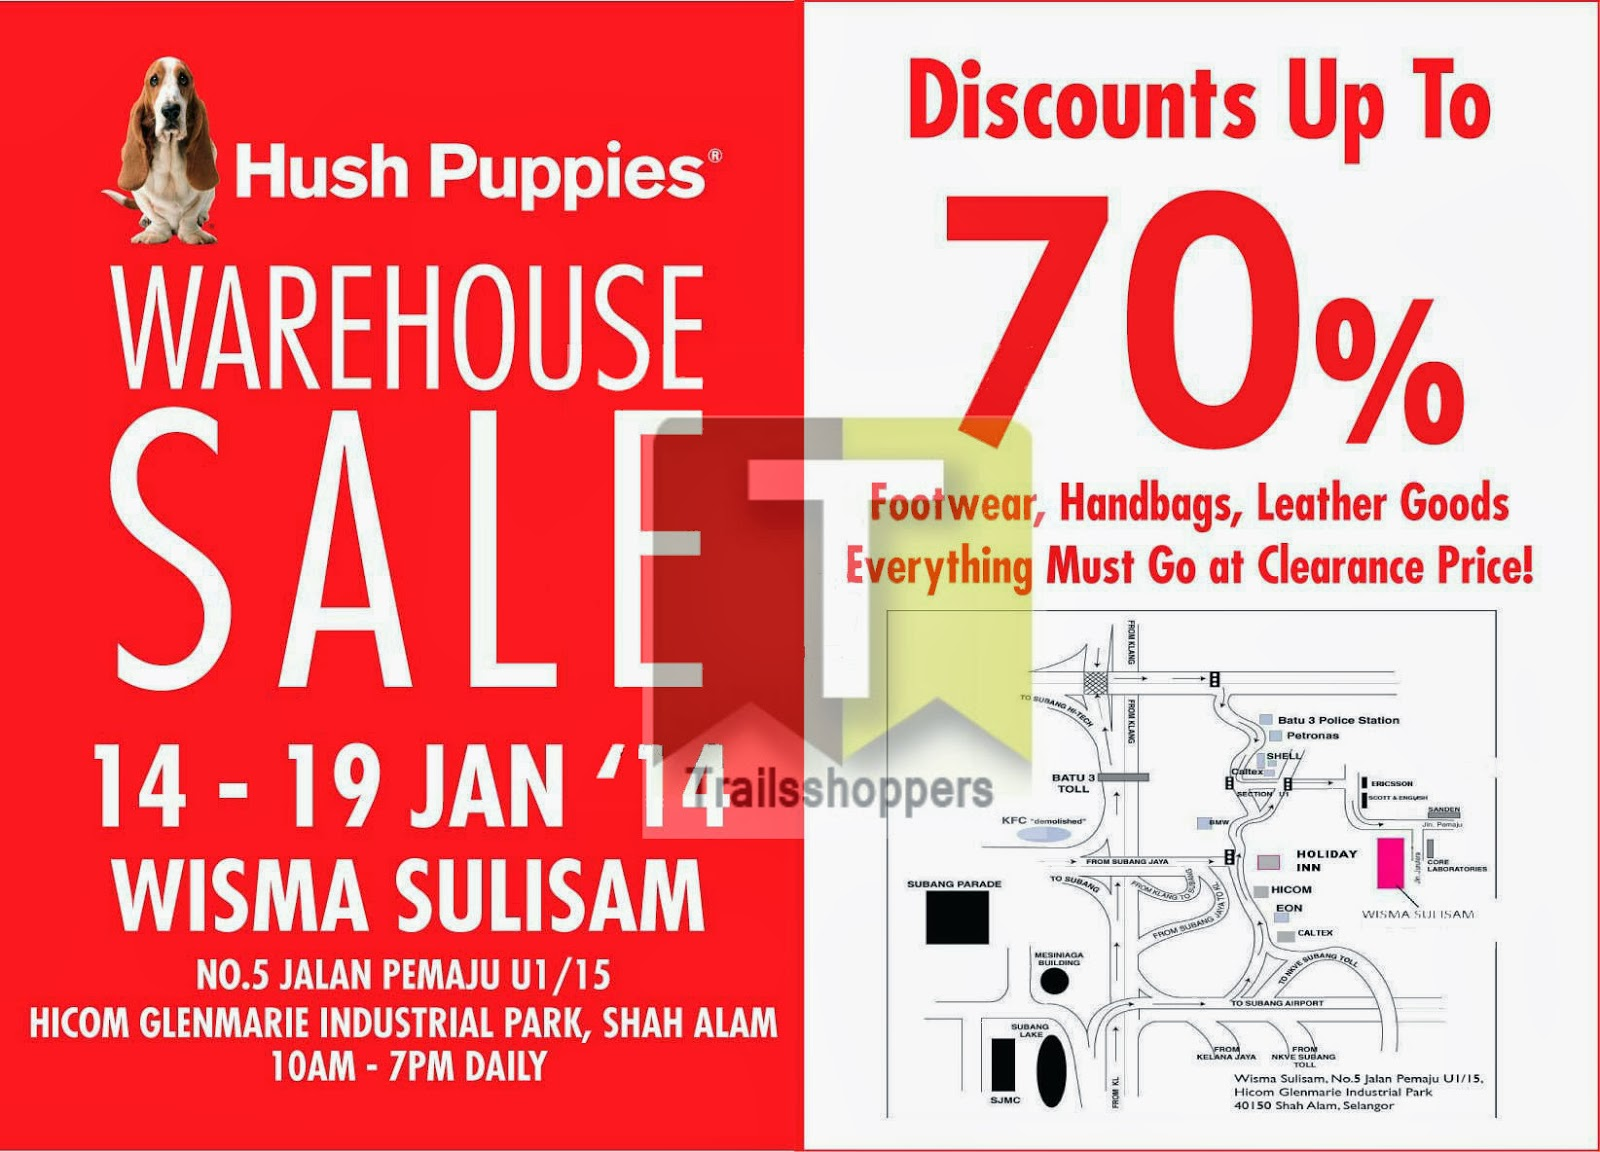 Hush Puppies Warehouse Sale 2014